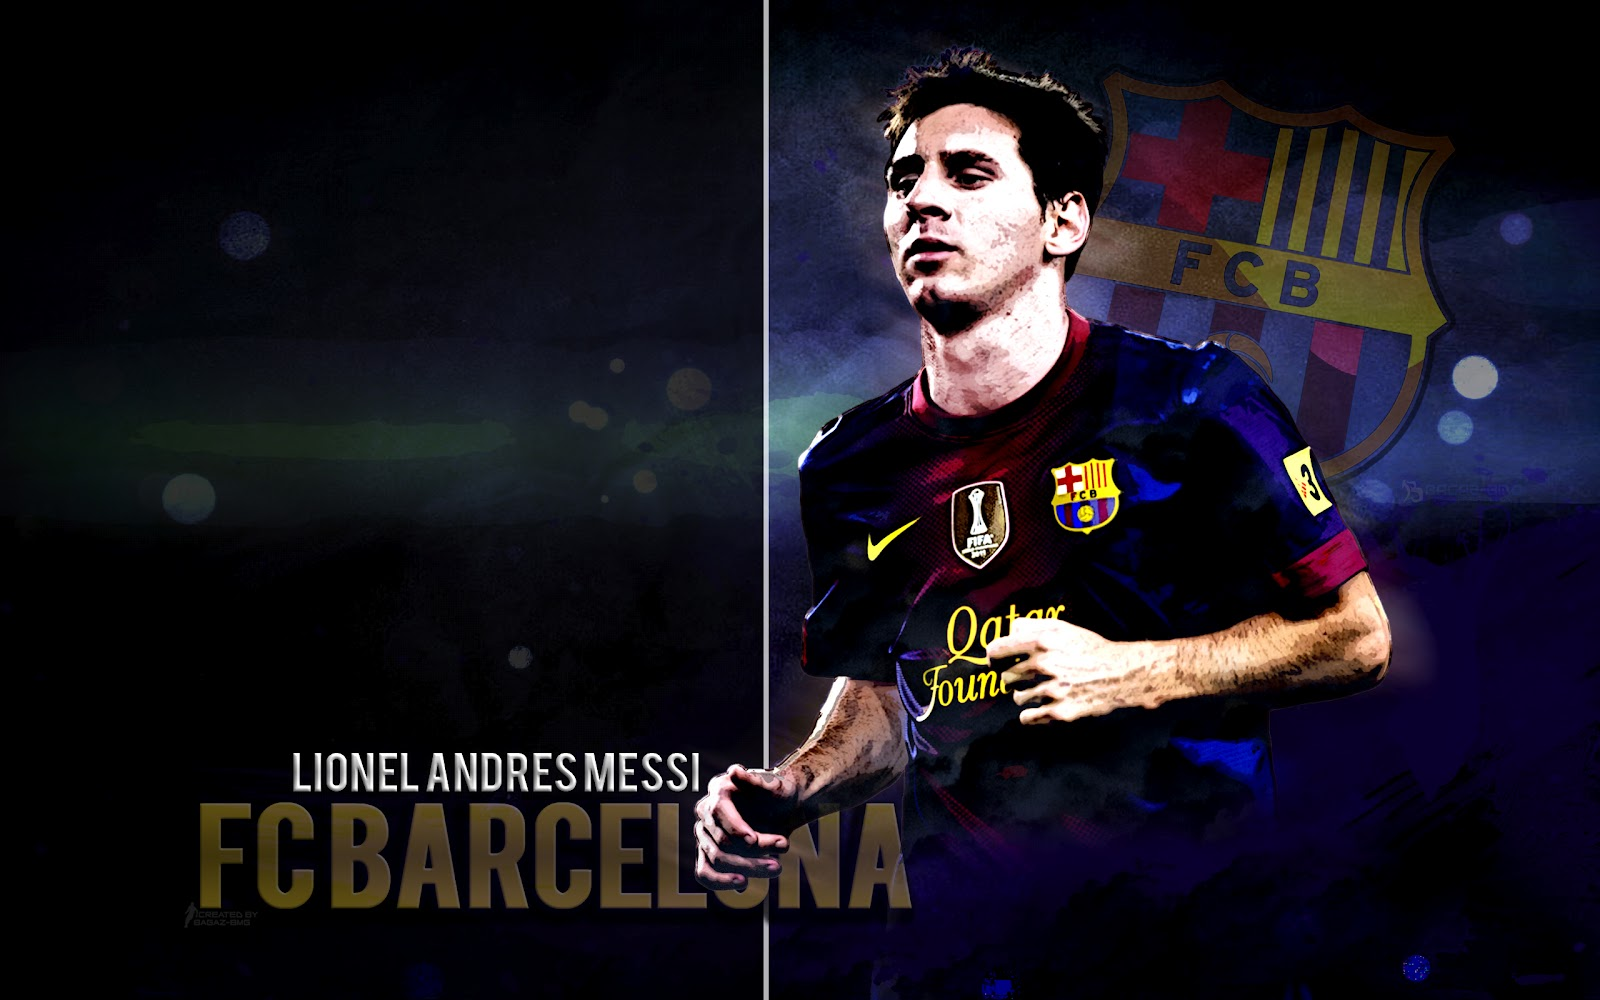 Lionel Messi 2013 HD Wallpaper - Bing images